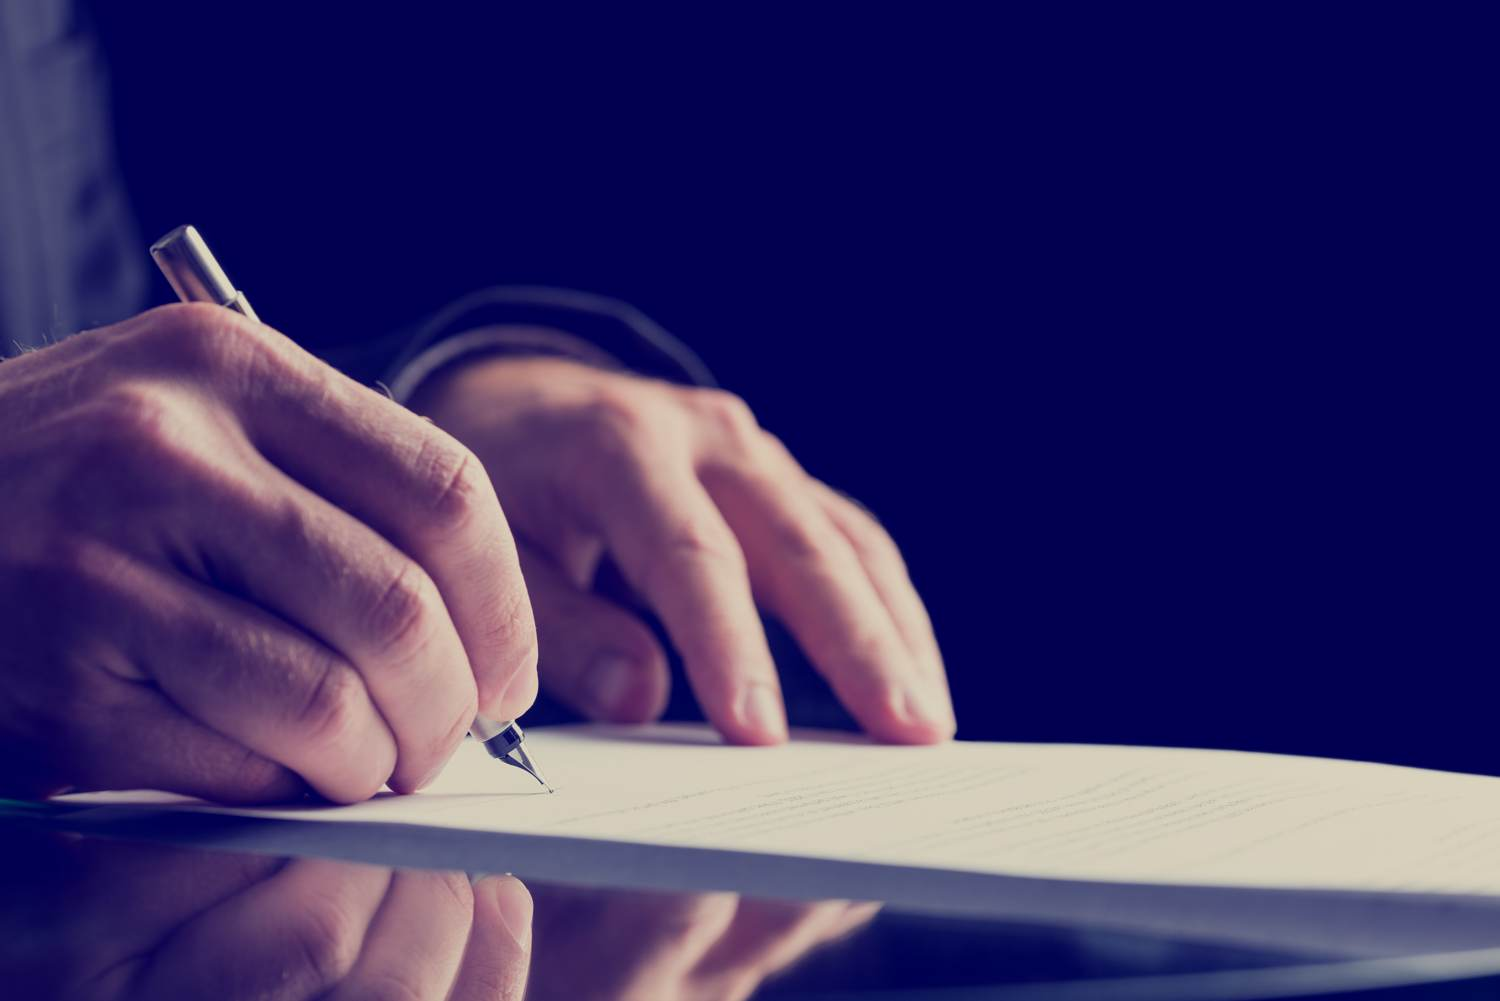 Signing a statutory will